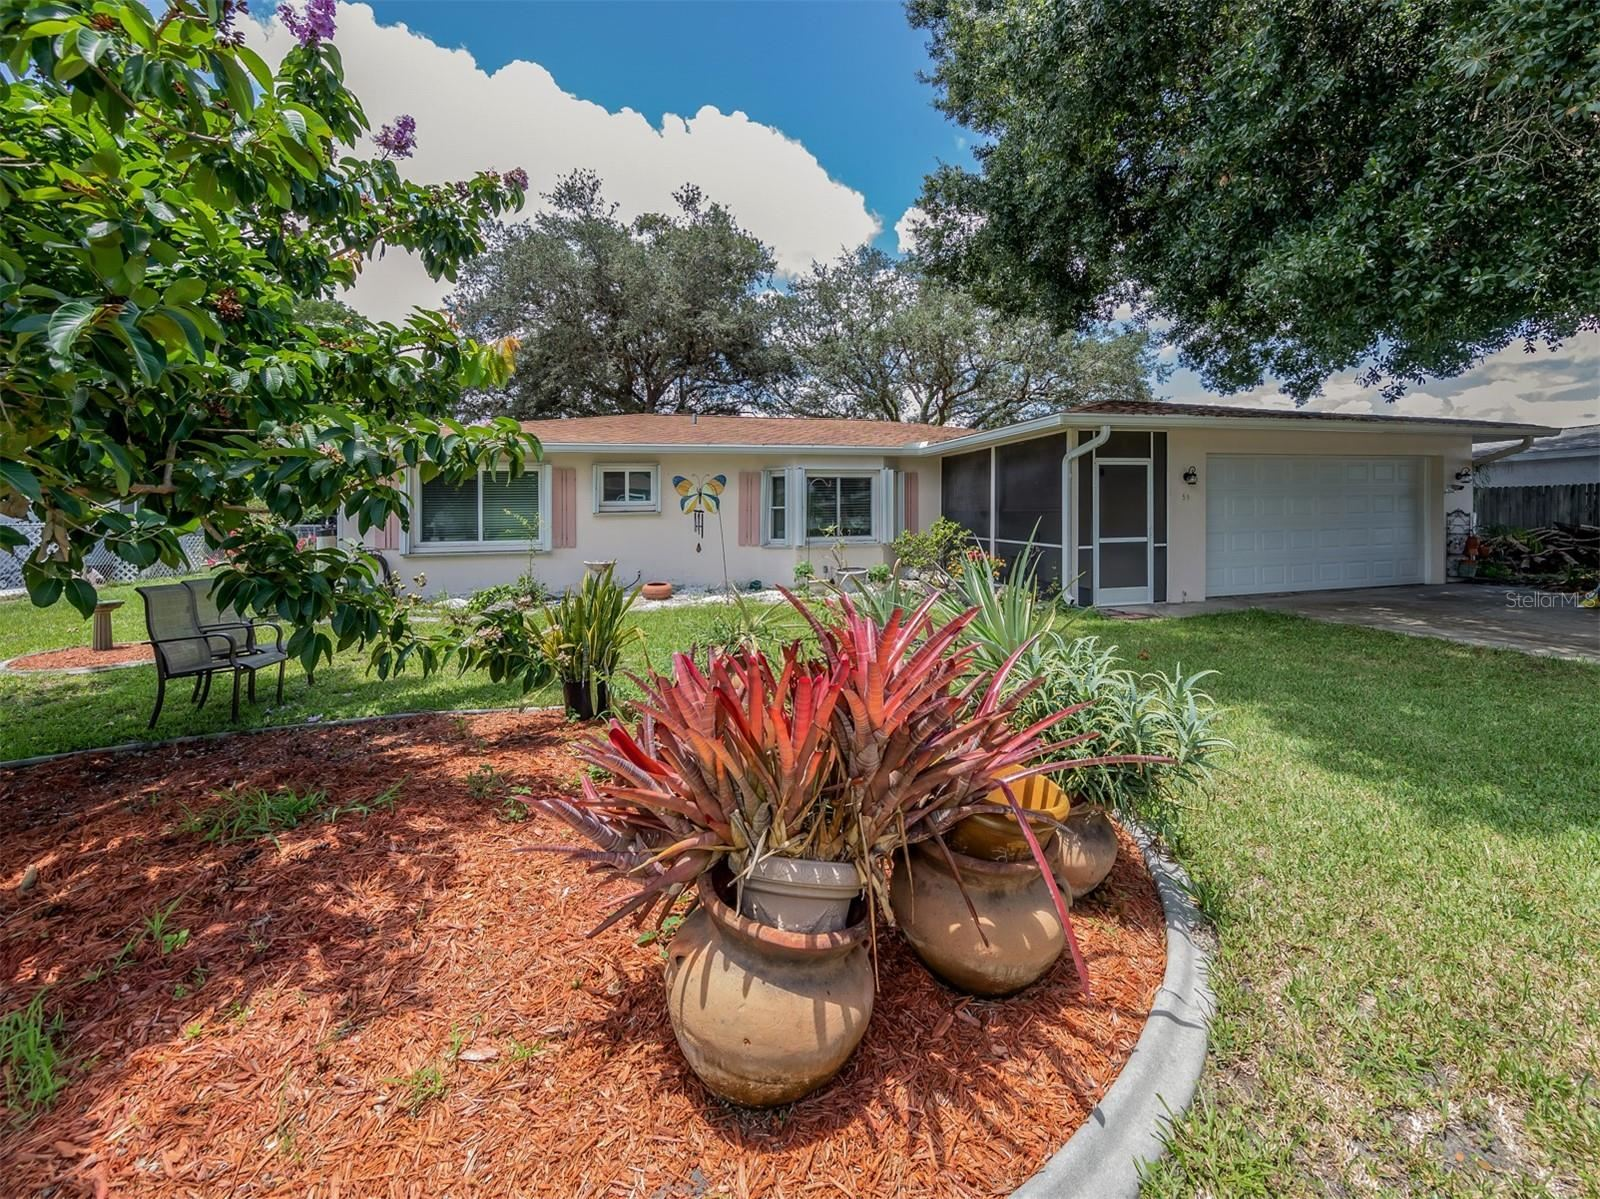 Photo of 59 GOLFVIEW ROAD, ROTONDA WEST, FL 33947 (MLS # A4507358)